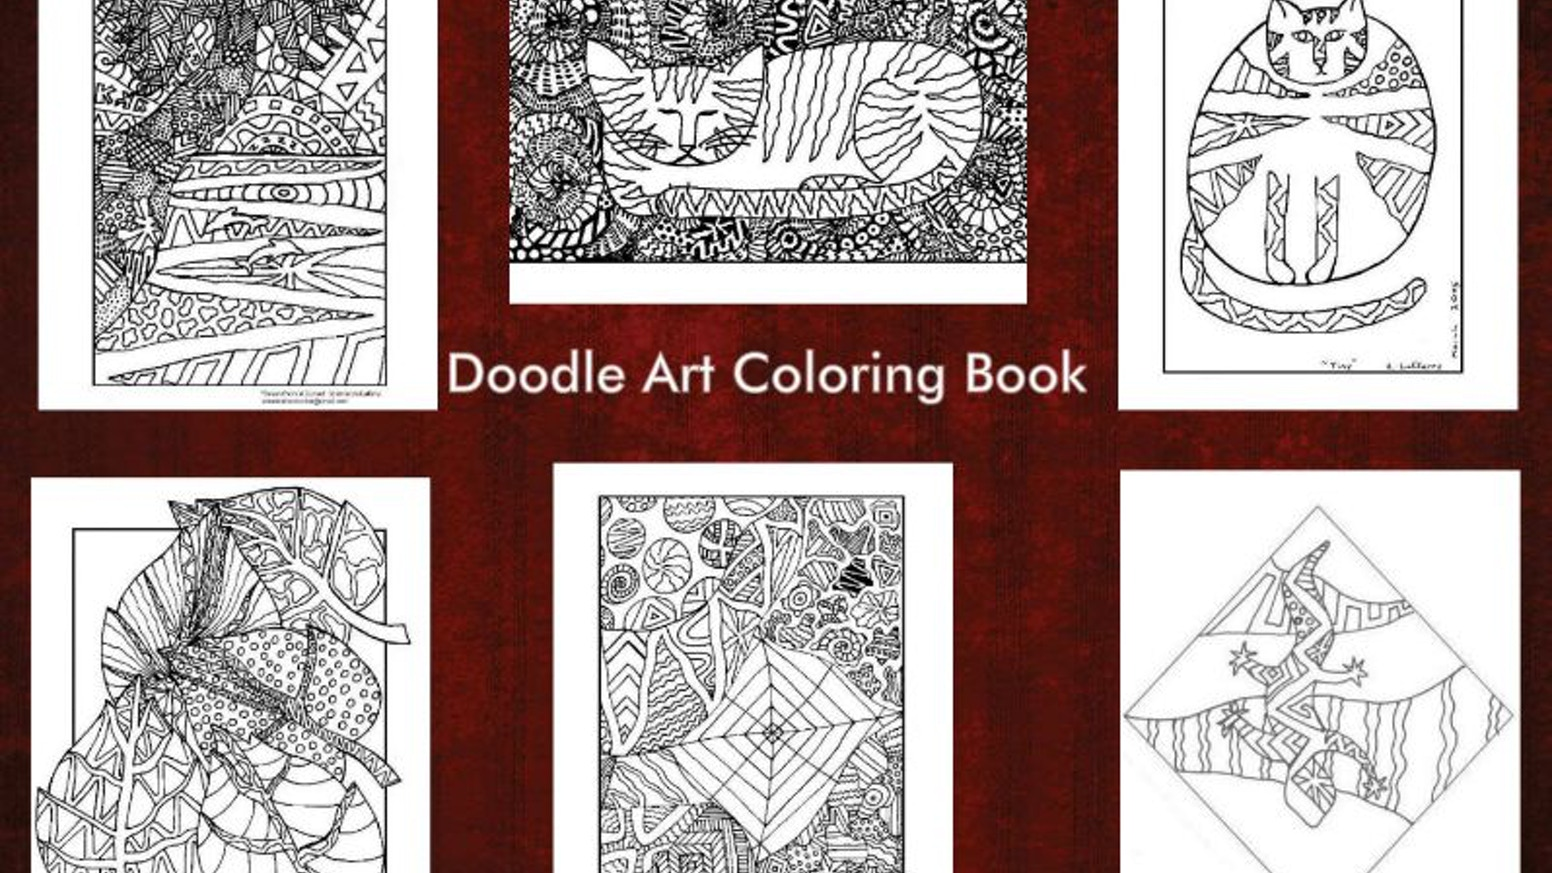 Doodle Art Coloring Book by Amanda the Doodler — Kickstarter